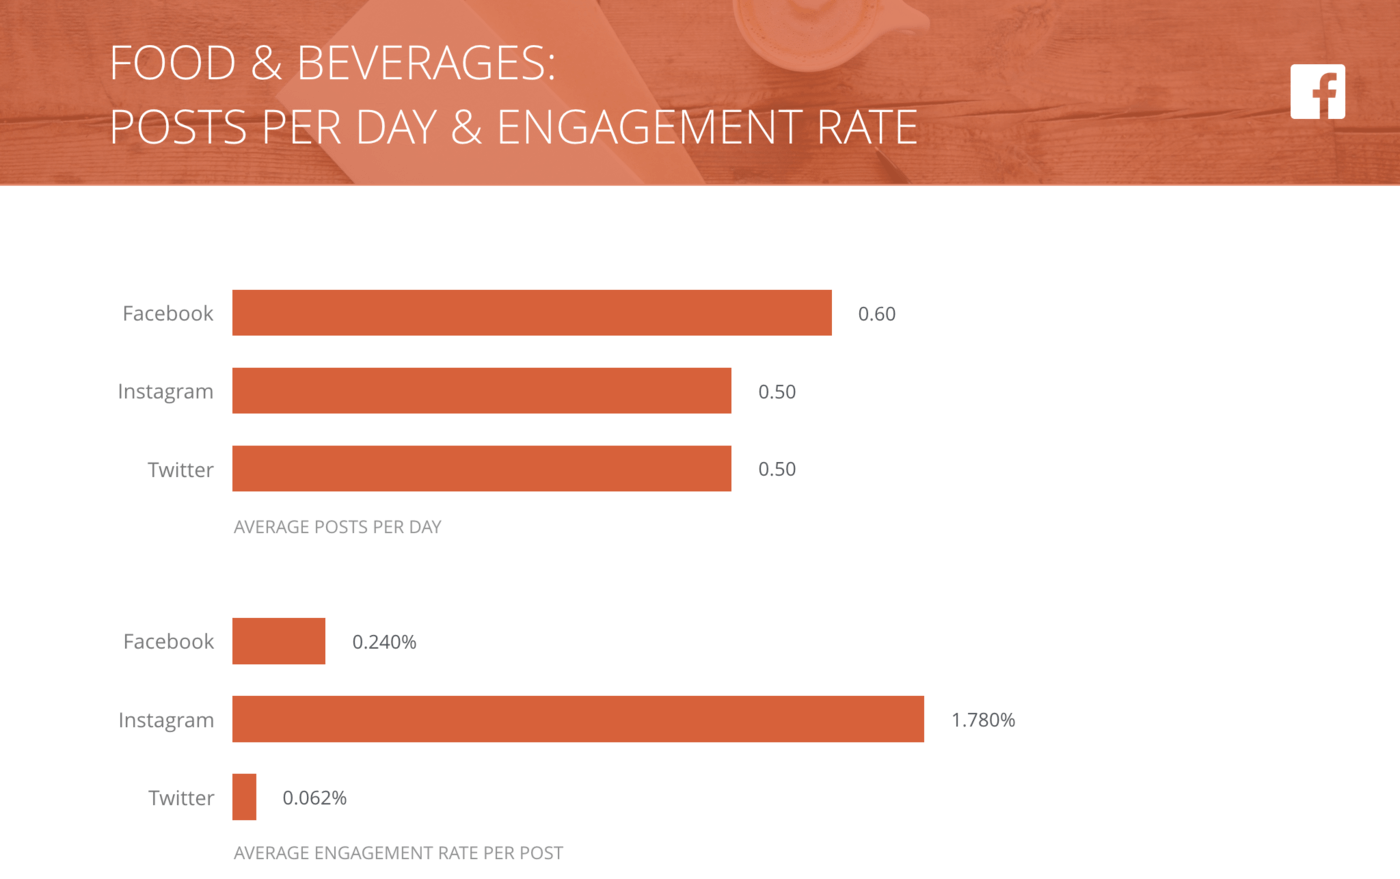 slide of Posts per Day and Engagement Rate per Post, Food & Beverages